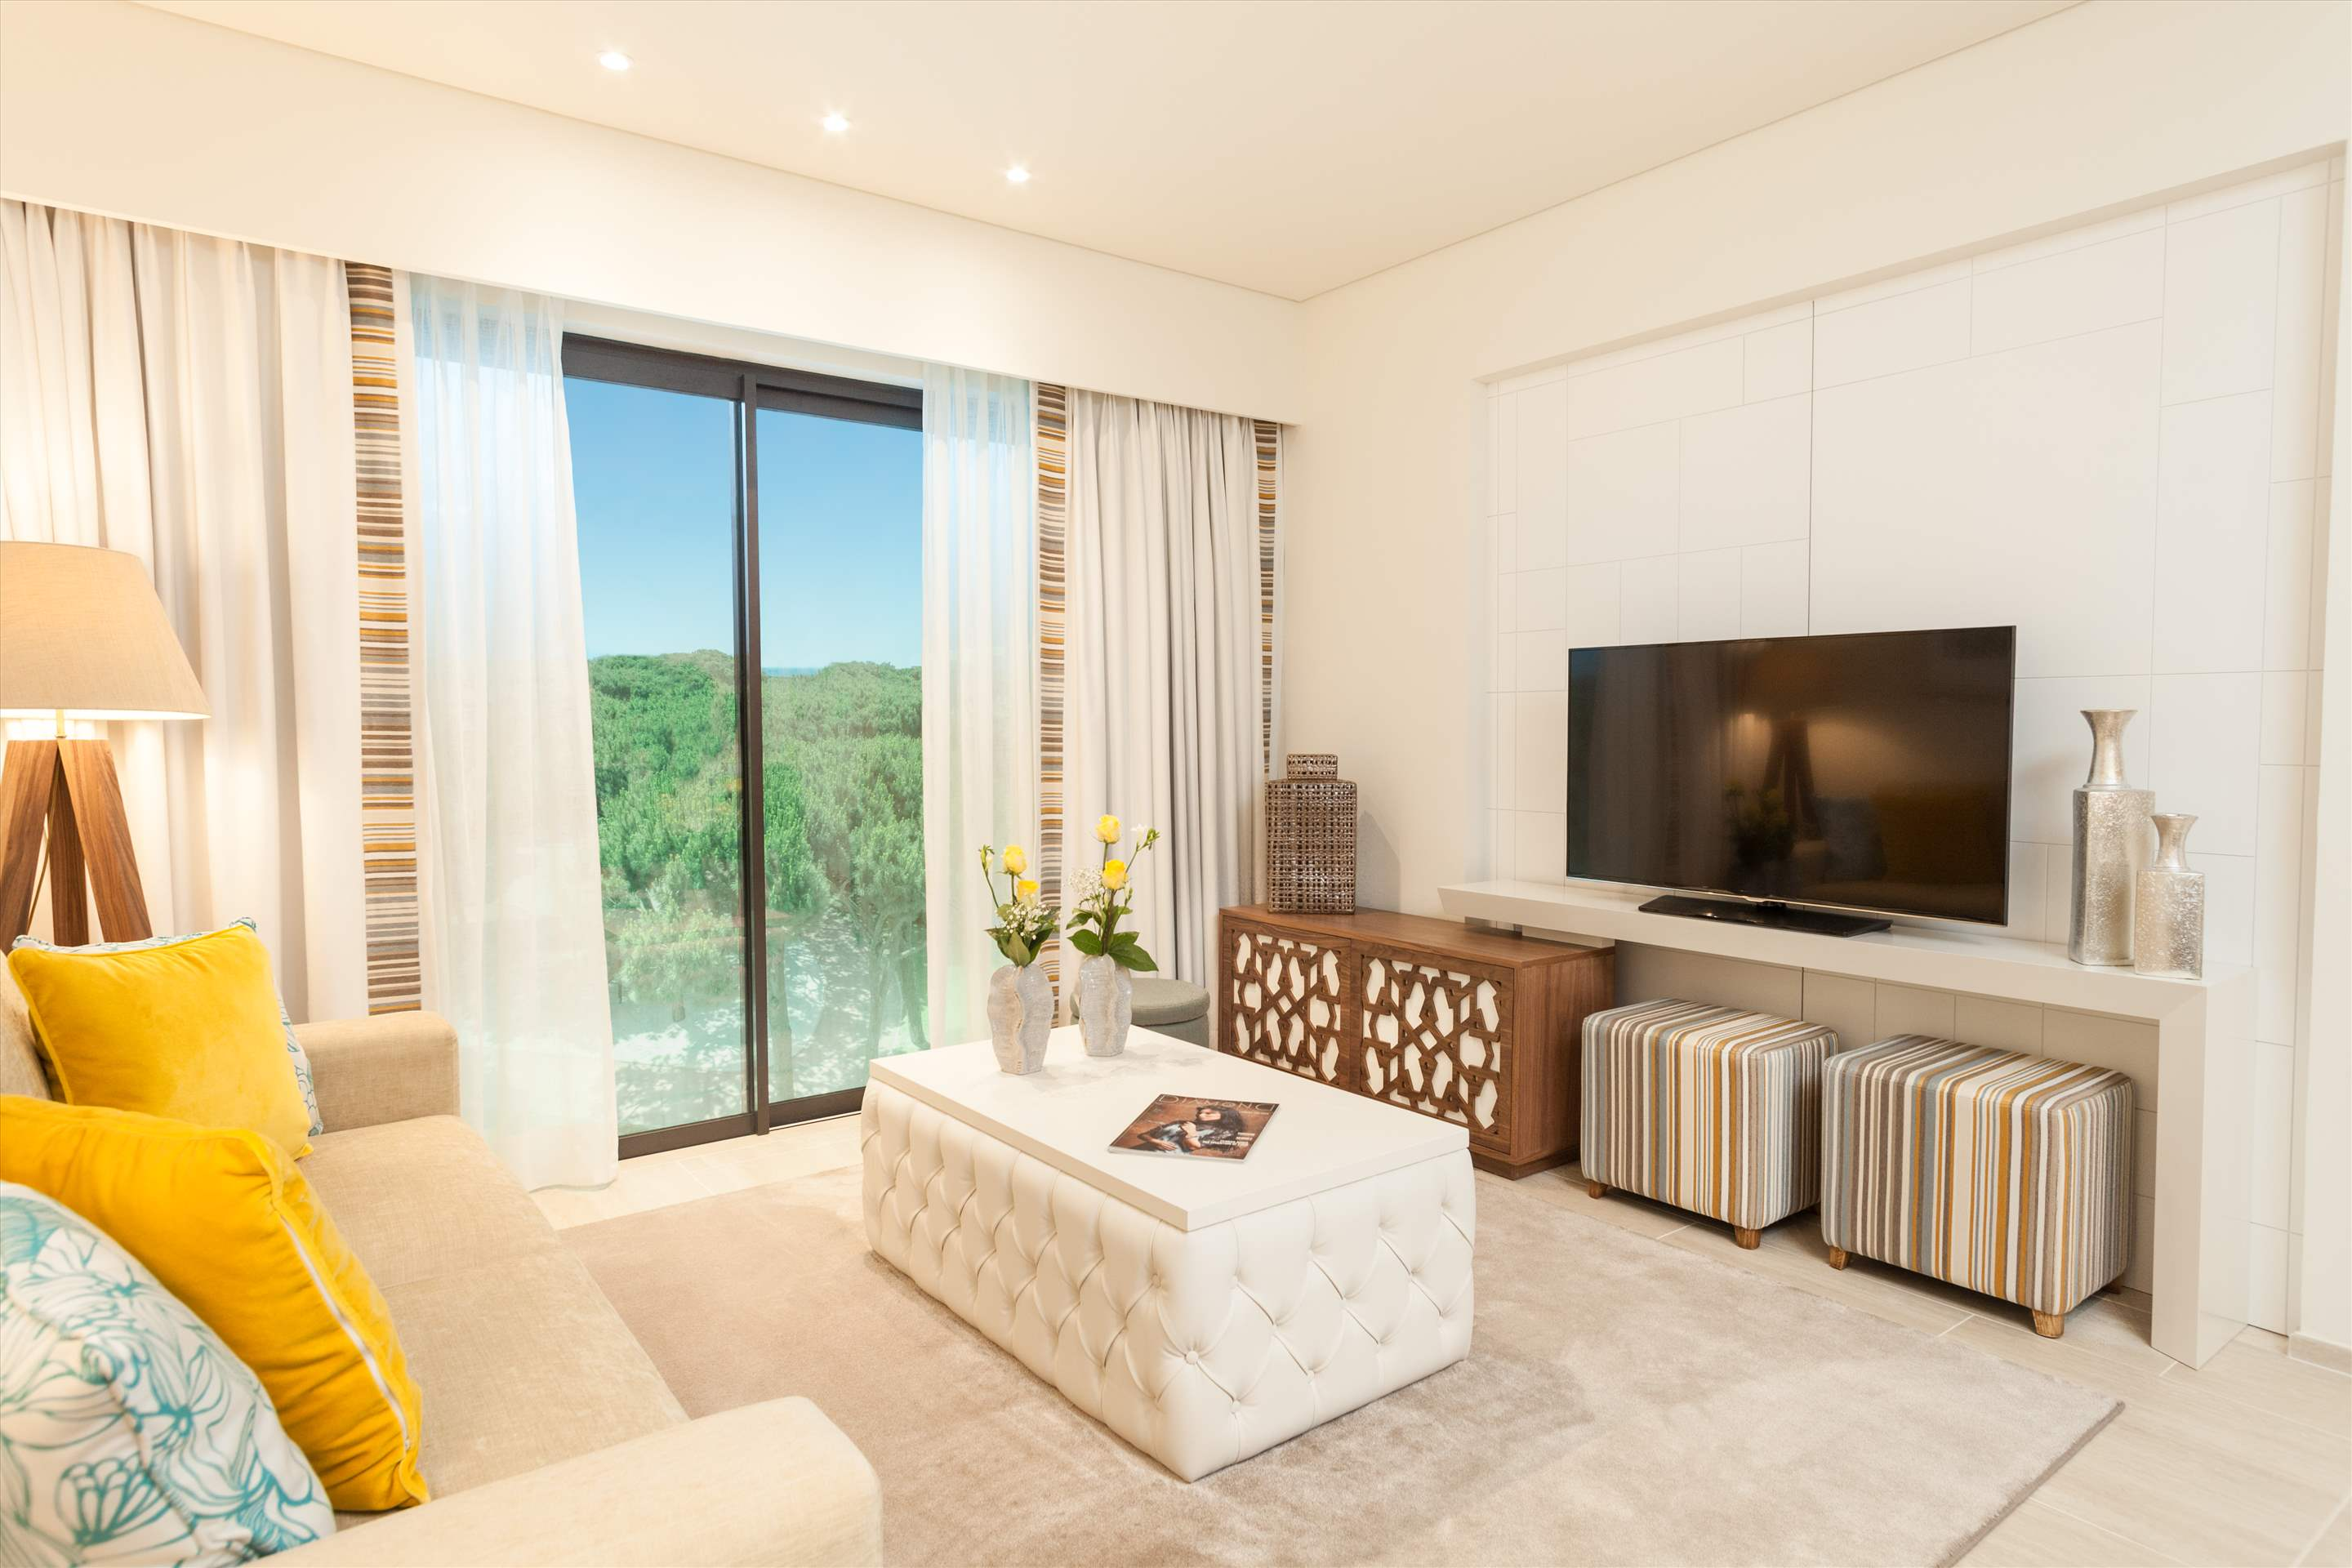 Pine Cliffs Gardens, Two Bedroom Suite, S/C Basis, 2 bedroom apartment in Pine Cliffs Resort, Algarve Photo #3